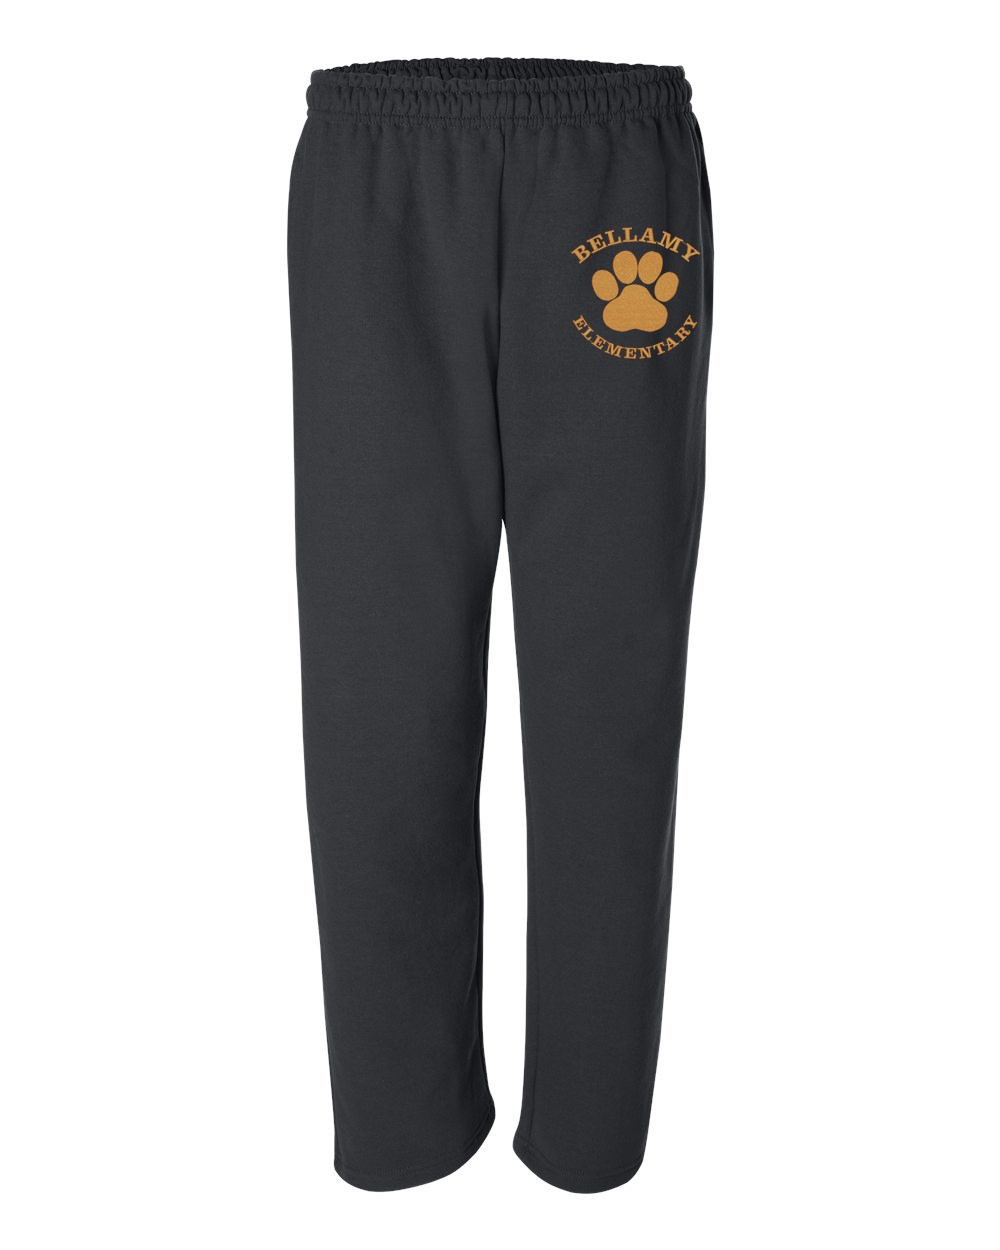 Bellamy Open Bottom Sweatpants